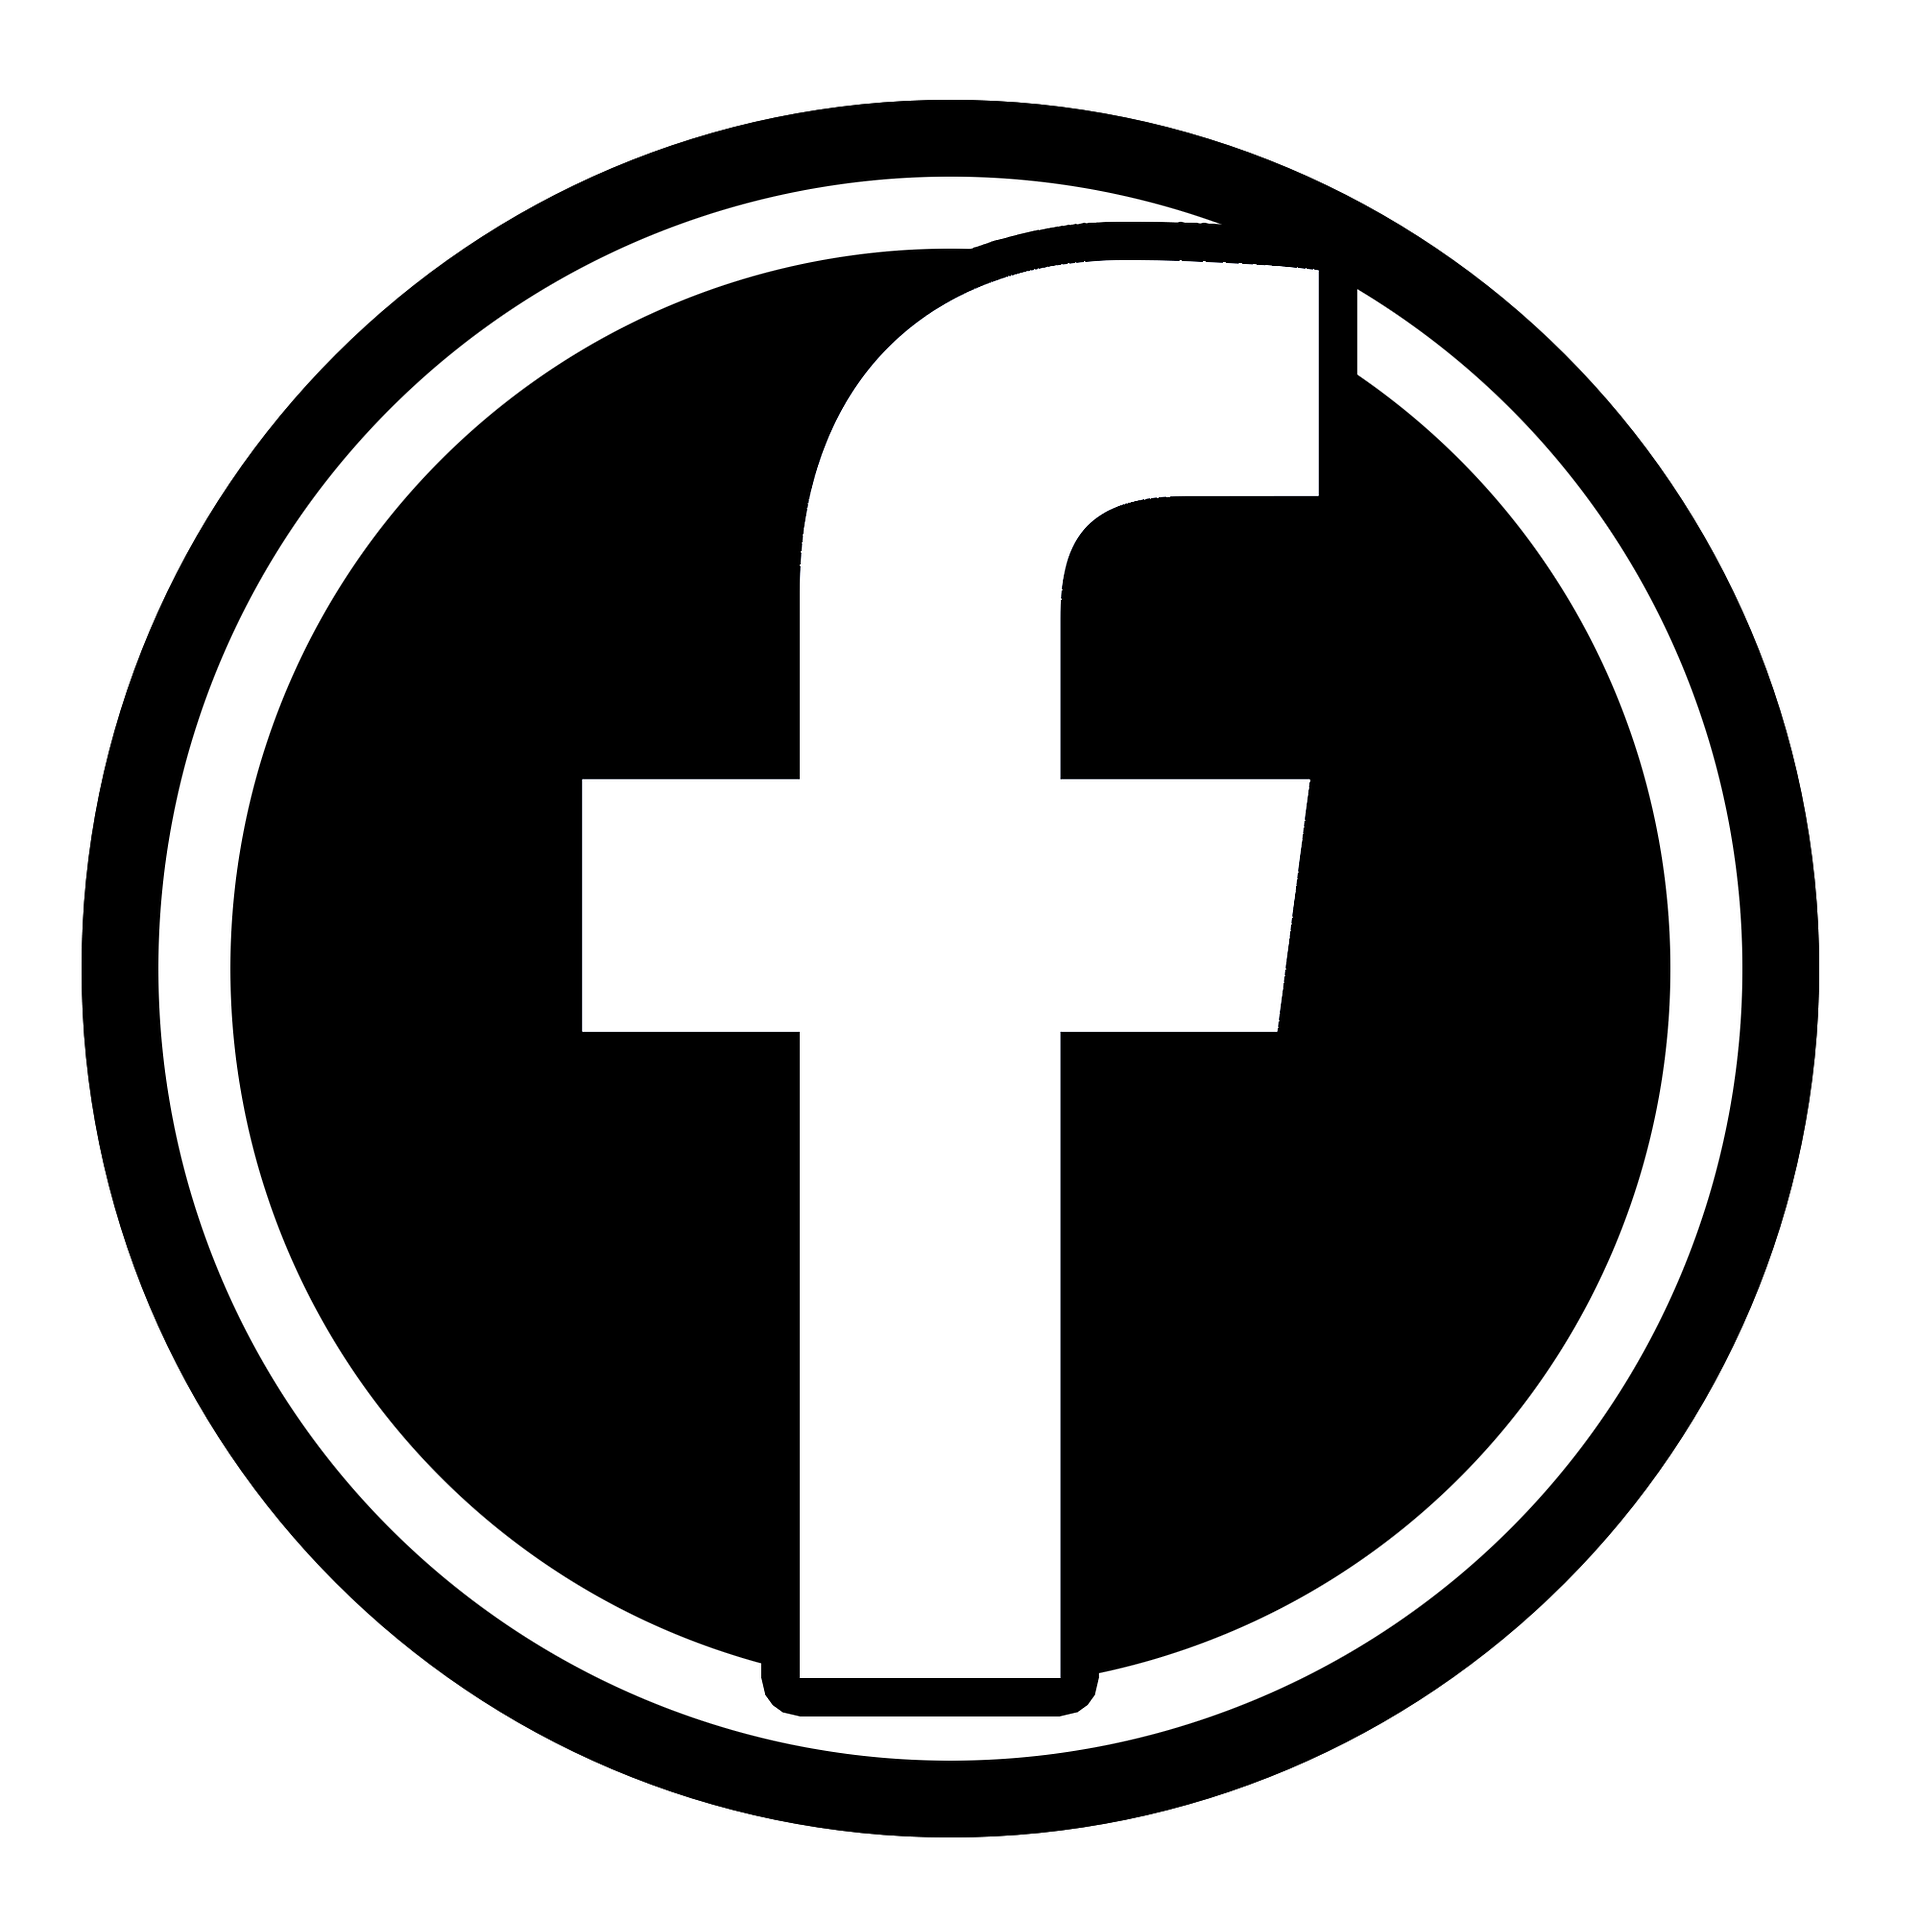 facebook-kambstyle